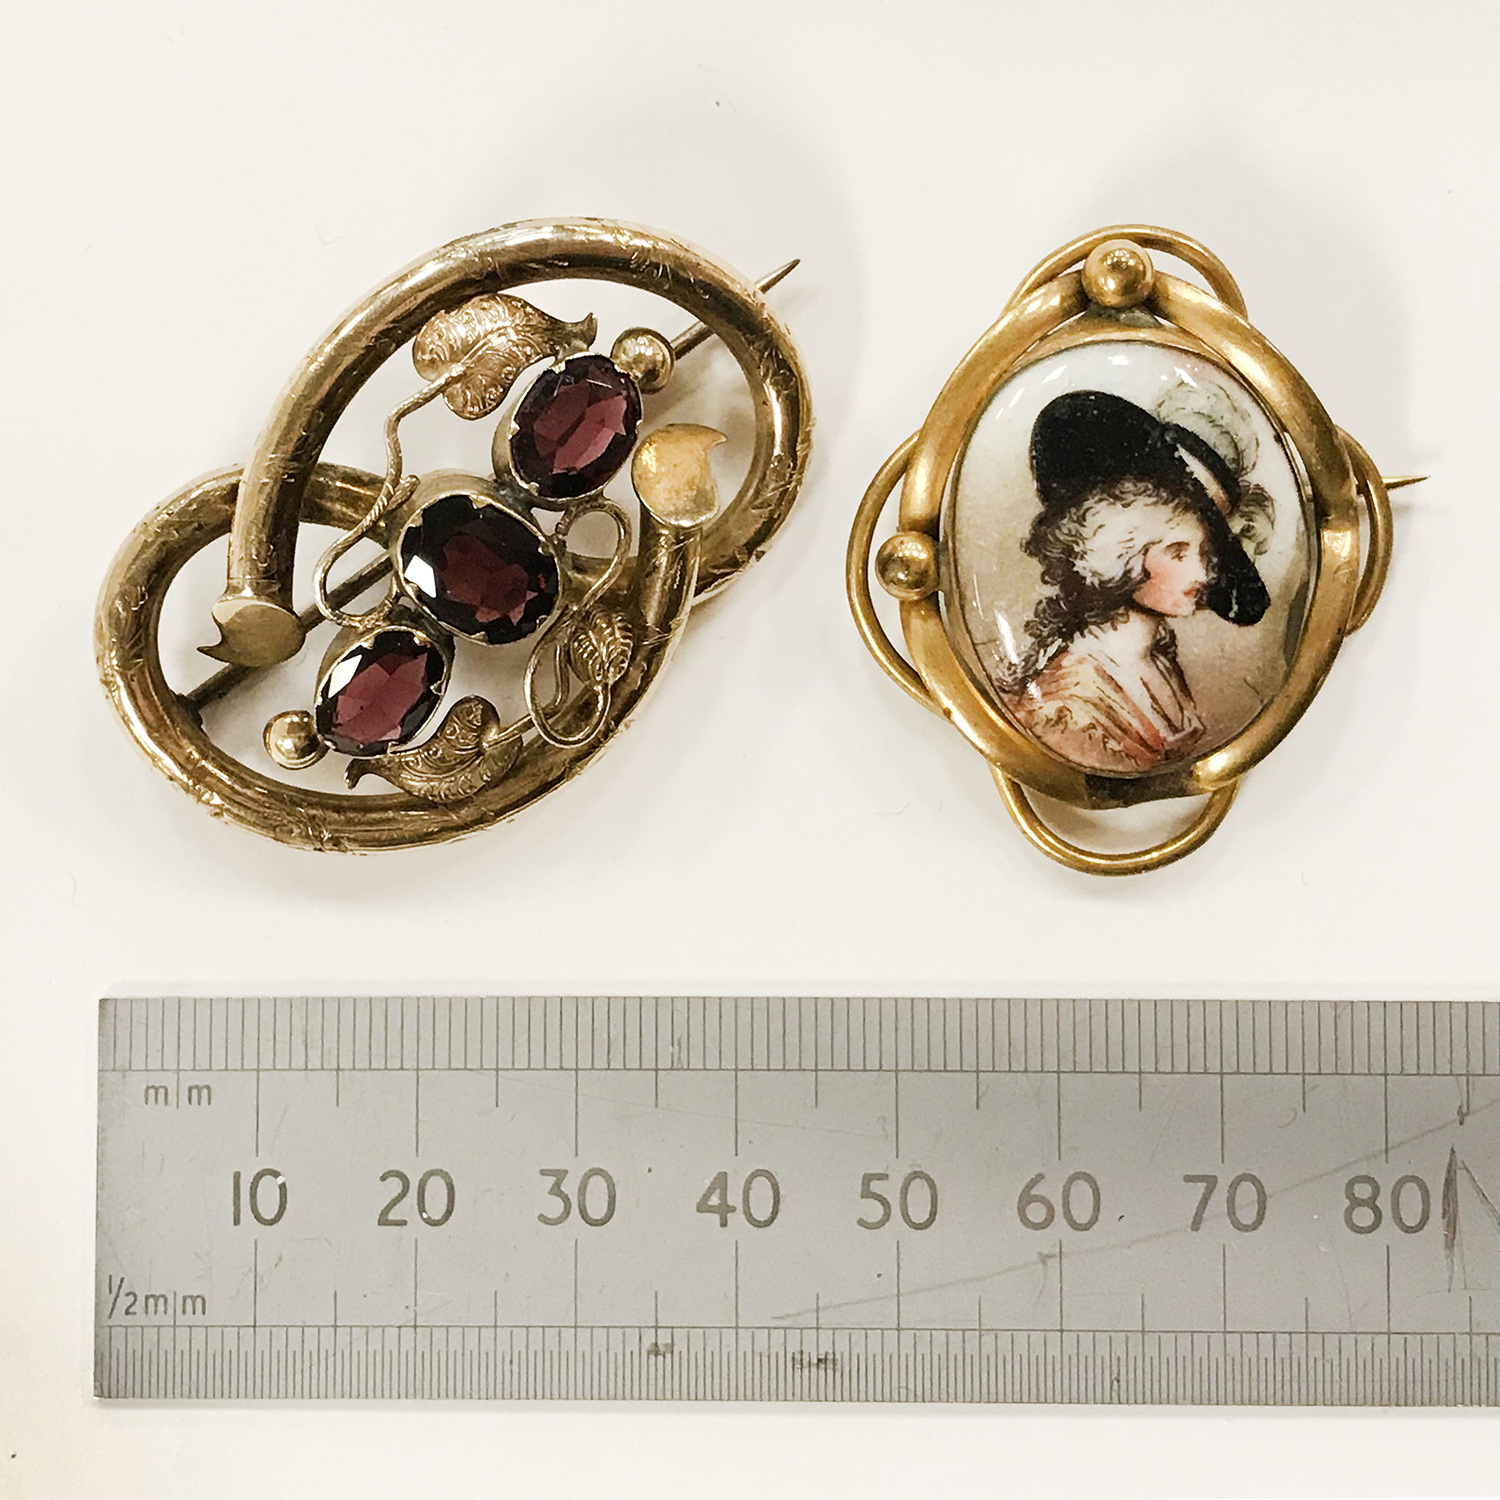 TWO ANTIQUE PIN BROOCHES - Image 2 of 5